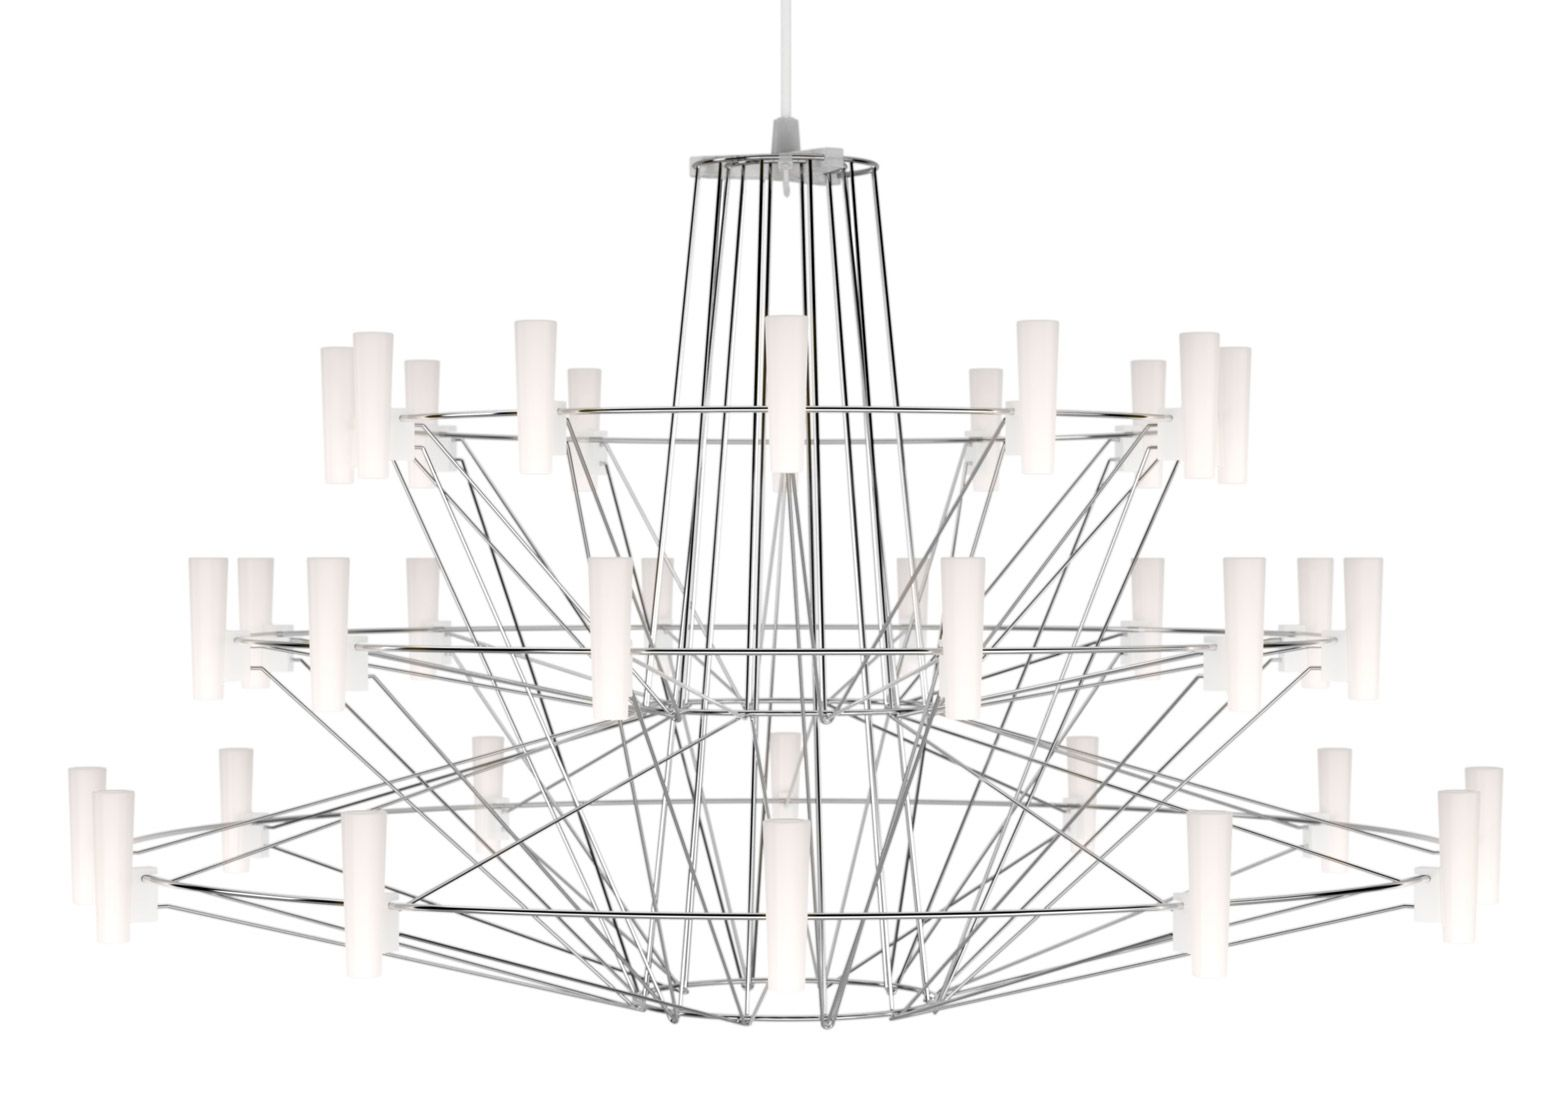 Miyake S Coppelia Light For Moooi Is A Three Tiered Wire